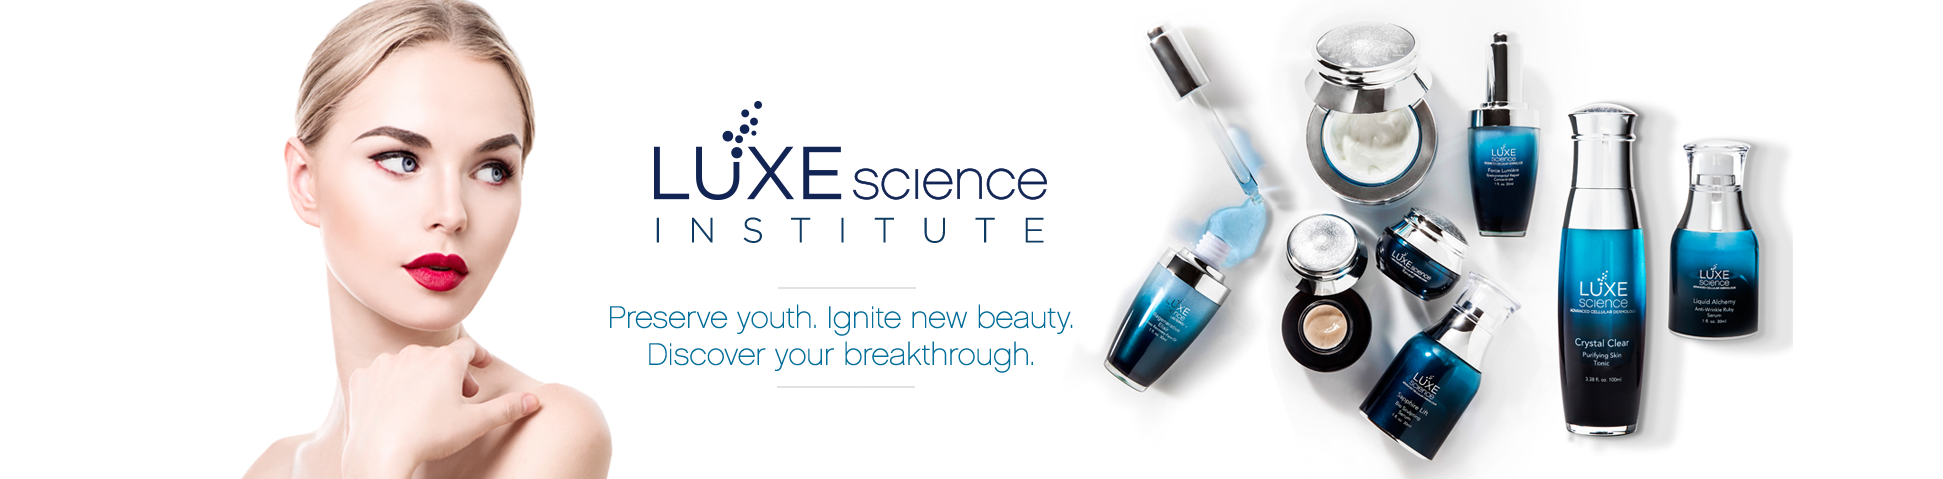 Luxe Science Skin Care Institute at La Bella Spa